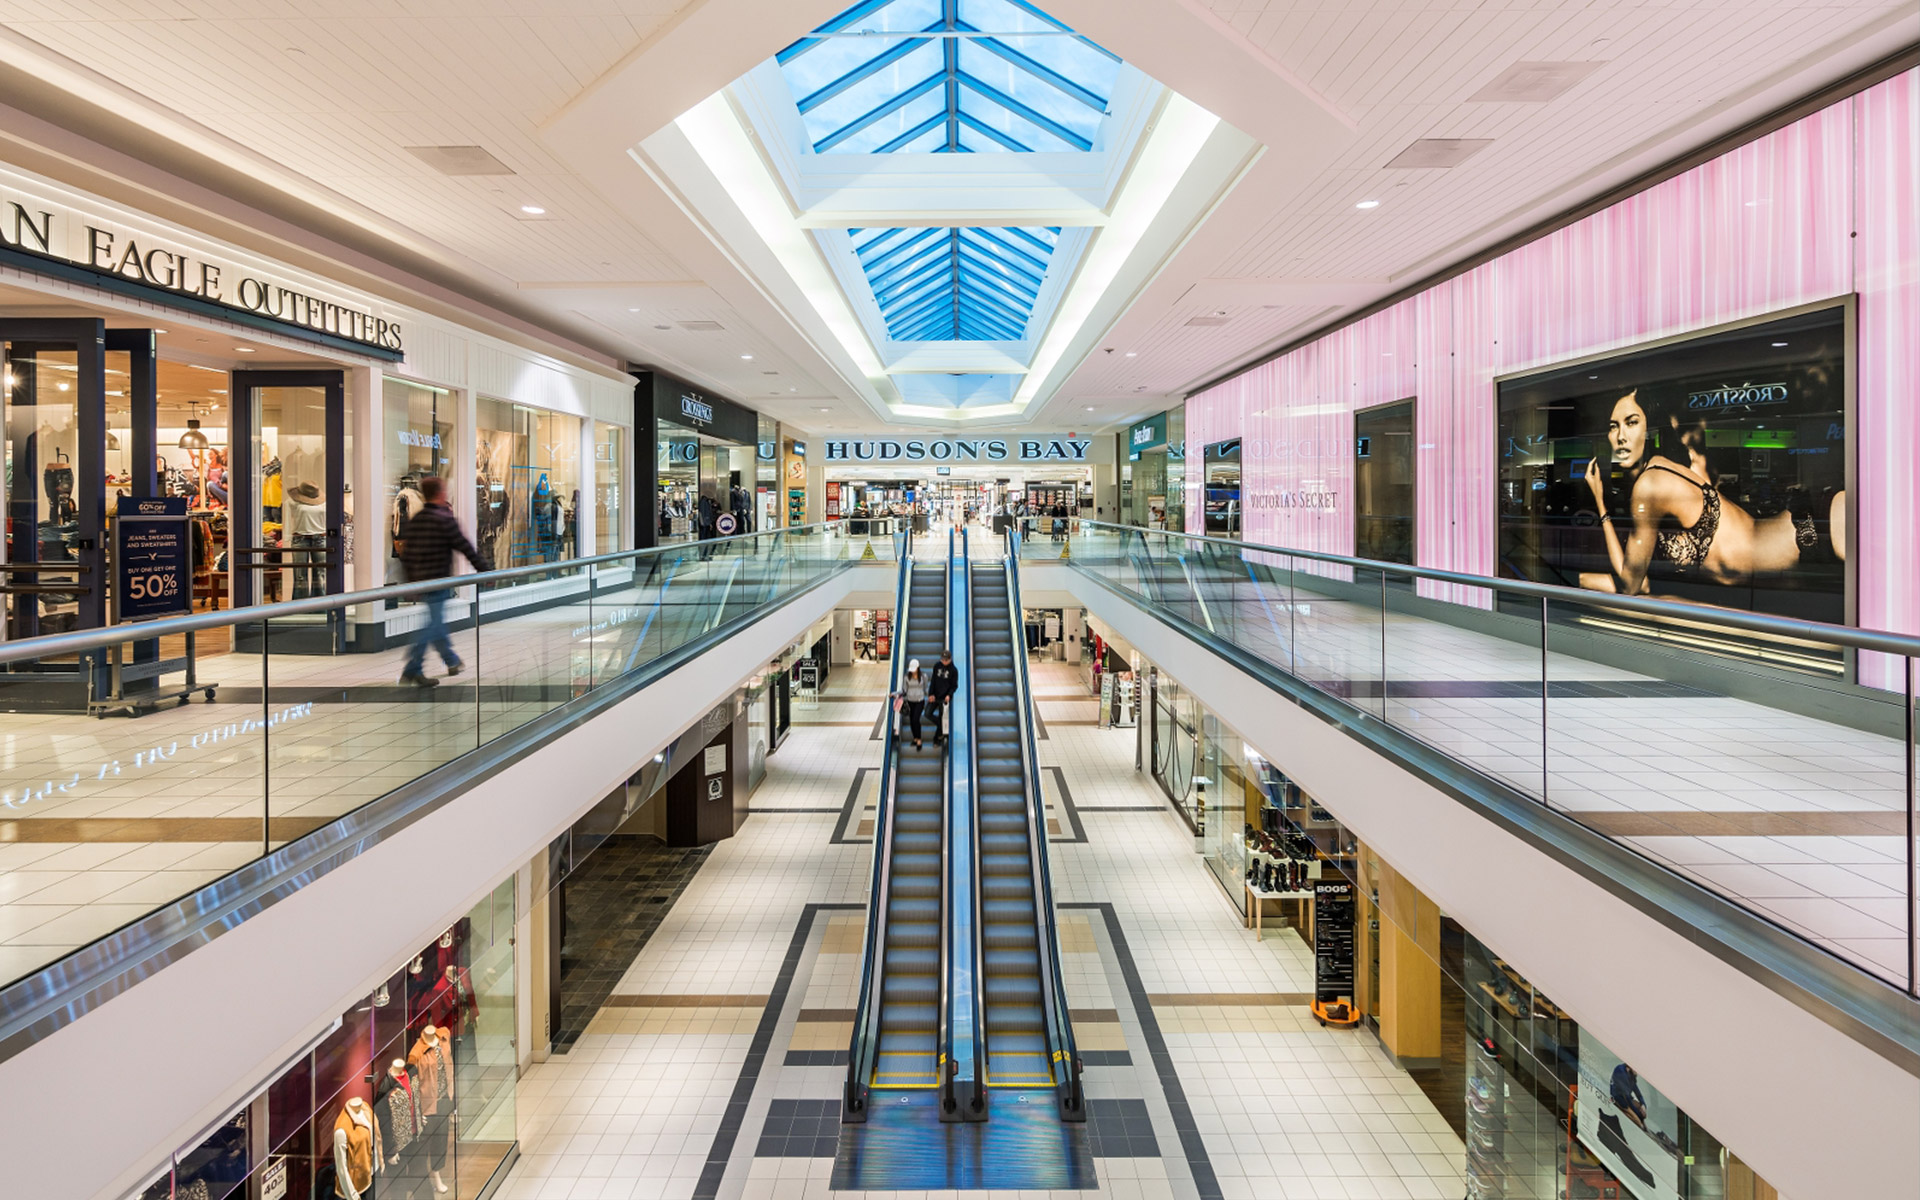 experiential retail saved this mall brand